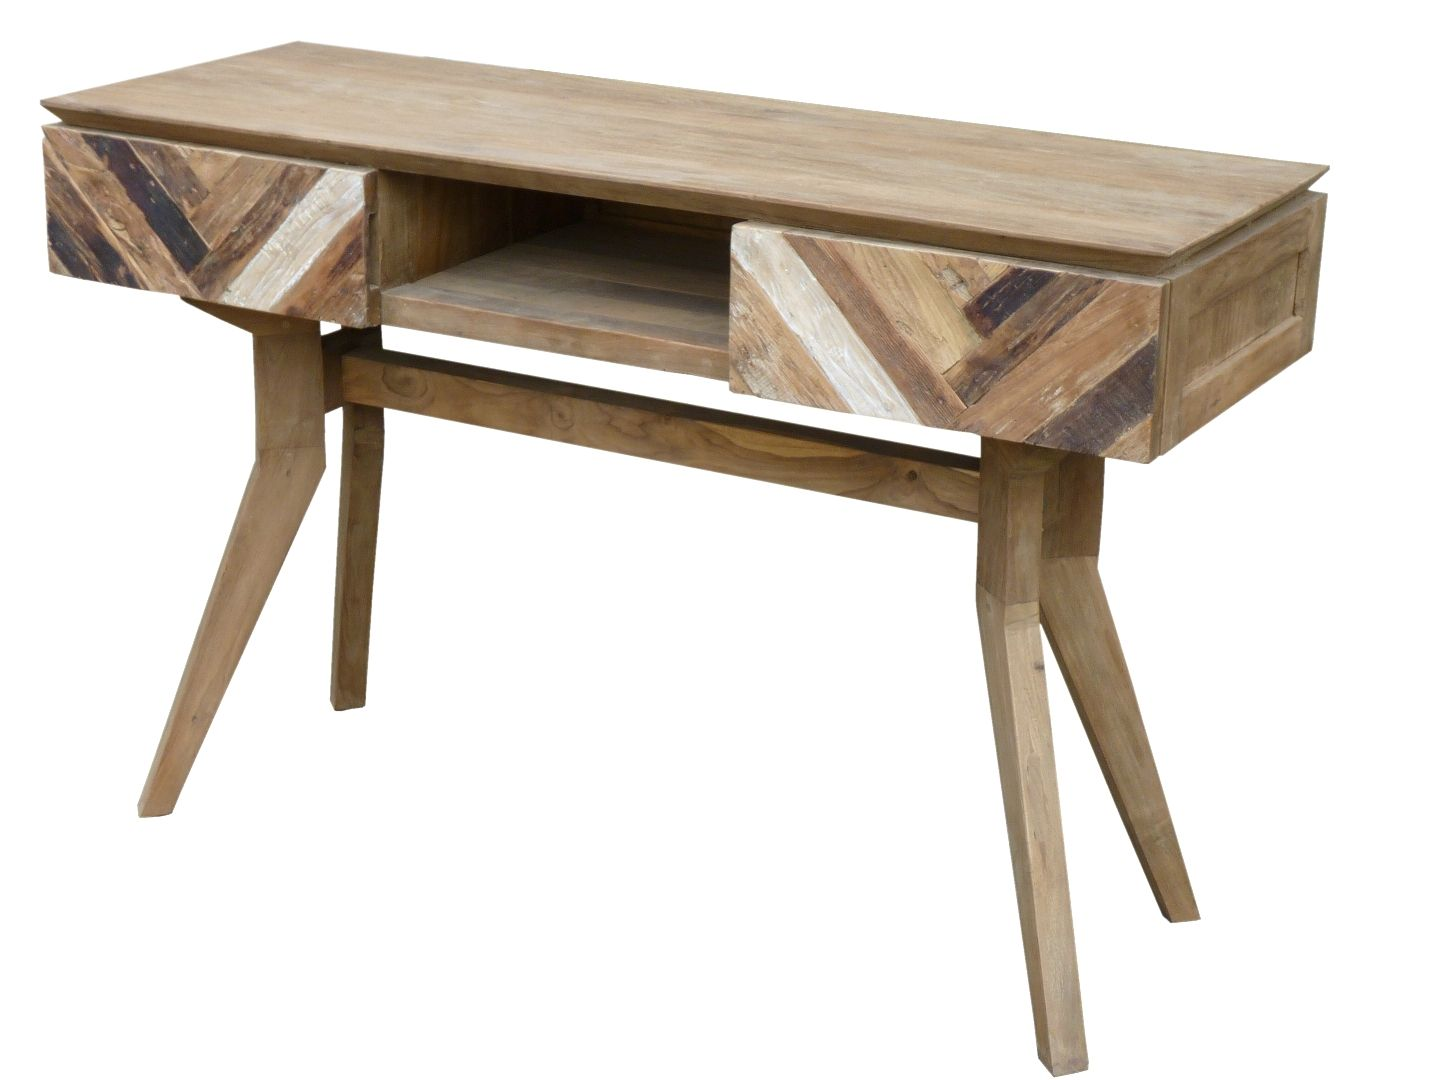 100 Recycled Teak Console Serving Table Infused With Distinct Art Deco Style Only At Ch Teak Wood Furniture Art Deco Console Table Rustic Wood Furniture